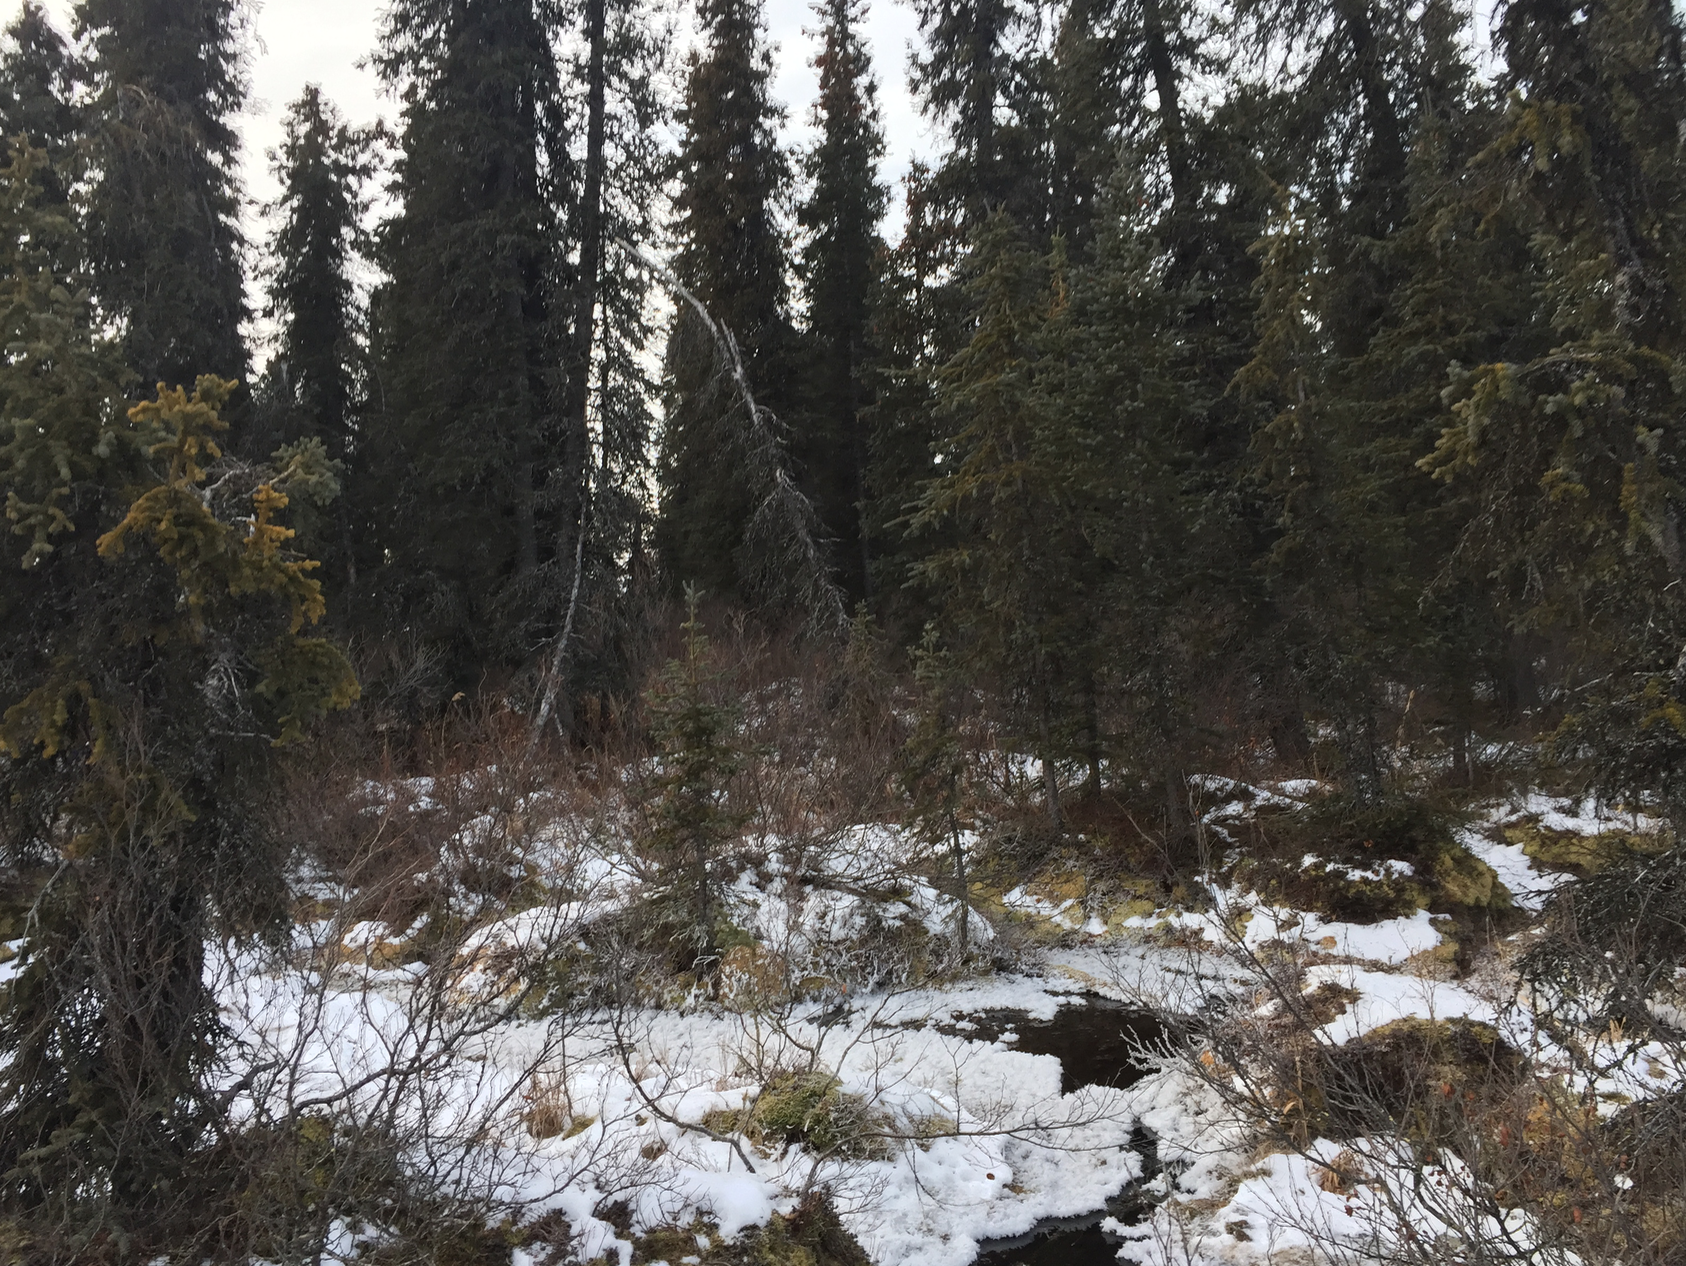 Patches of dense forest around the lake made visibility difficult- so we alerted bears to our presence by yelling cautionary announcements into the trees. No bears were seen on the ground